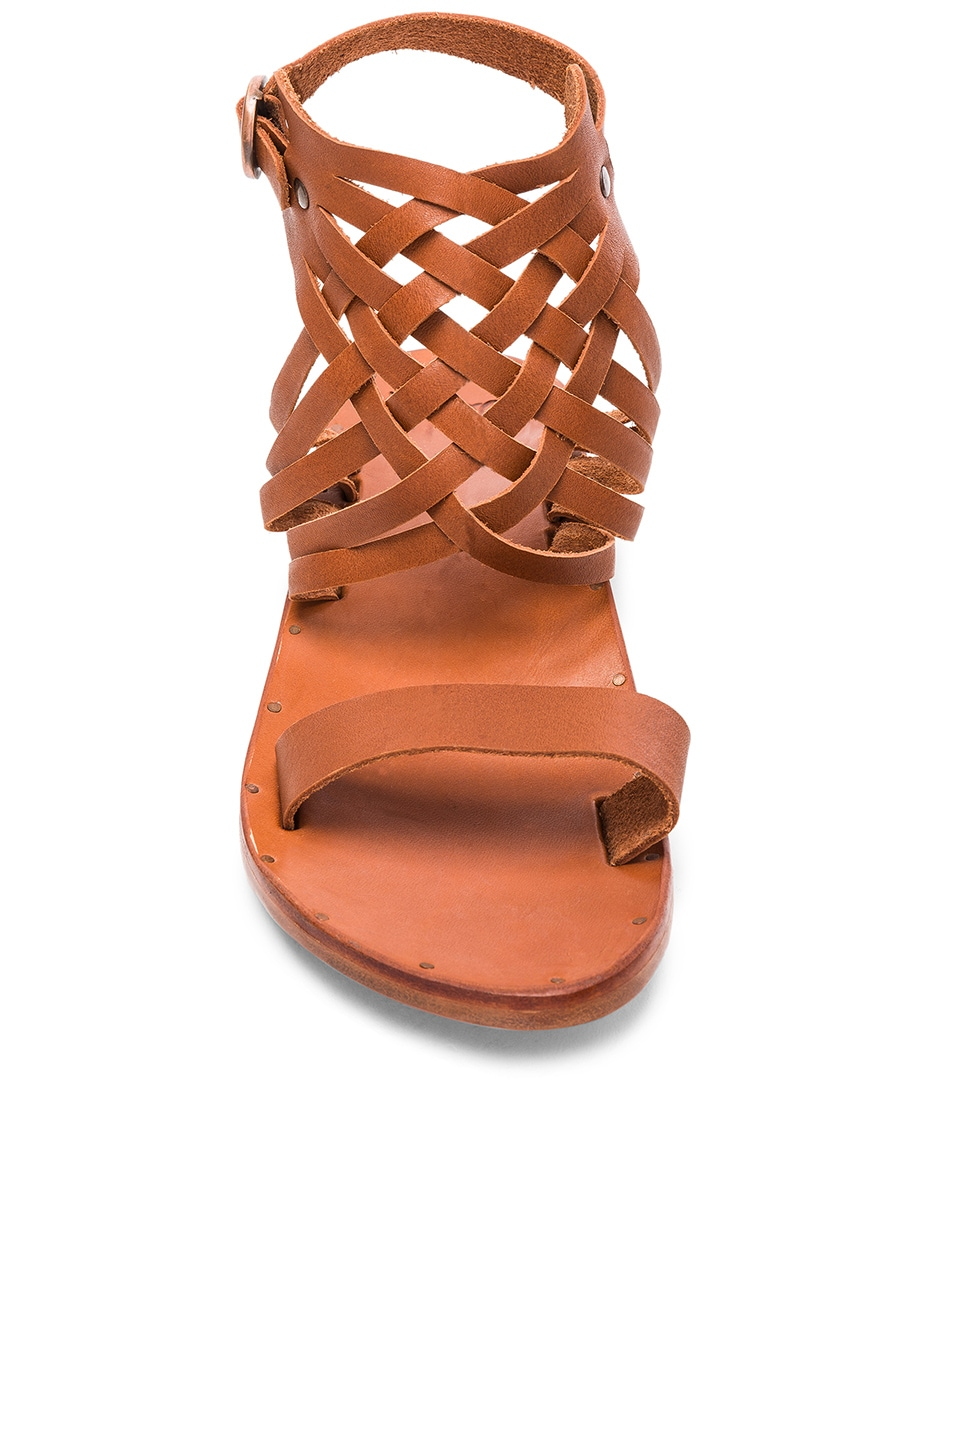 Image 4 of Beek The Raven Sandals in Tan